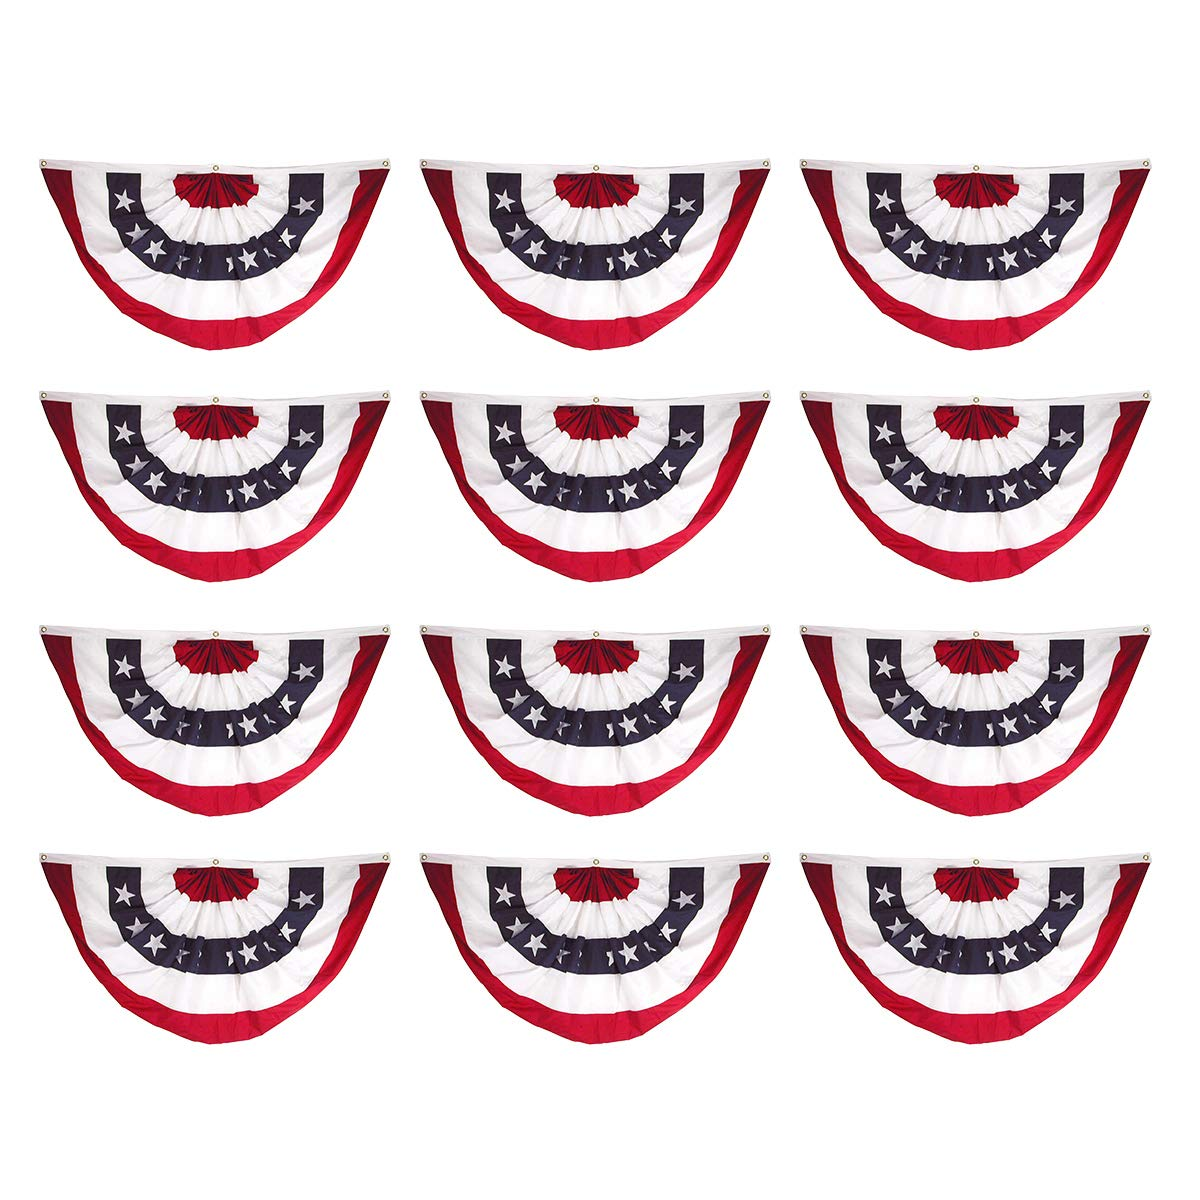 Super Tough 12-Pack, 18in x 36in Sewn Polyester Pleated Fan Flag Bunting